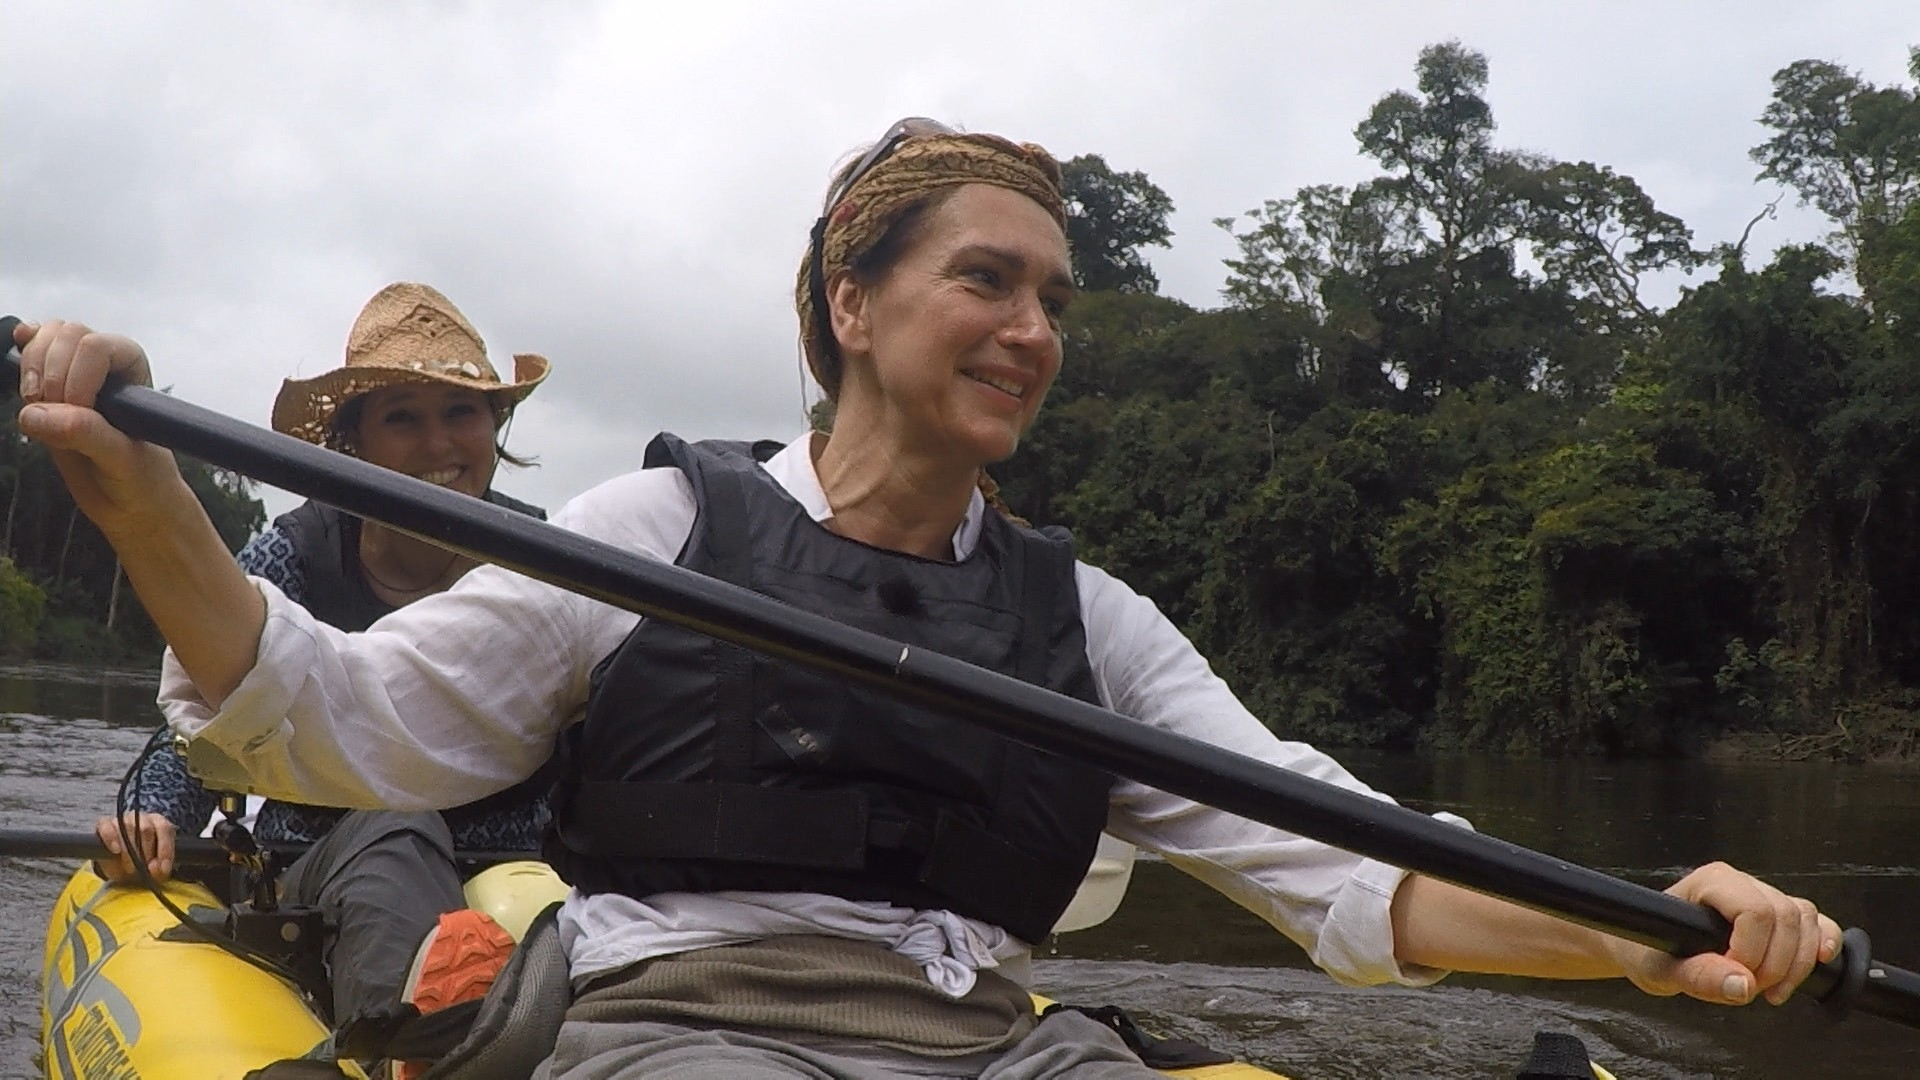 Risky Rivers - Monic Hendrickx en Susan Visser in Suriname